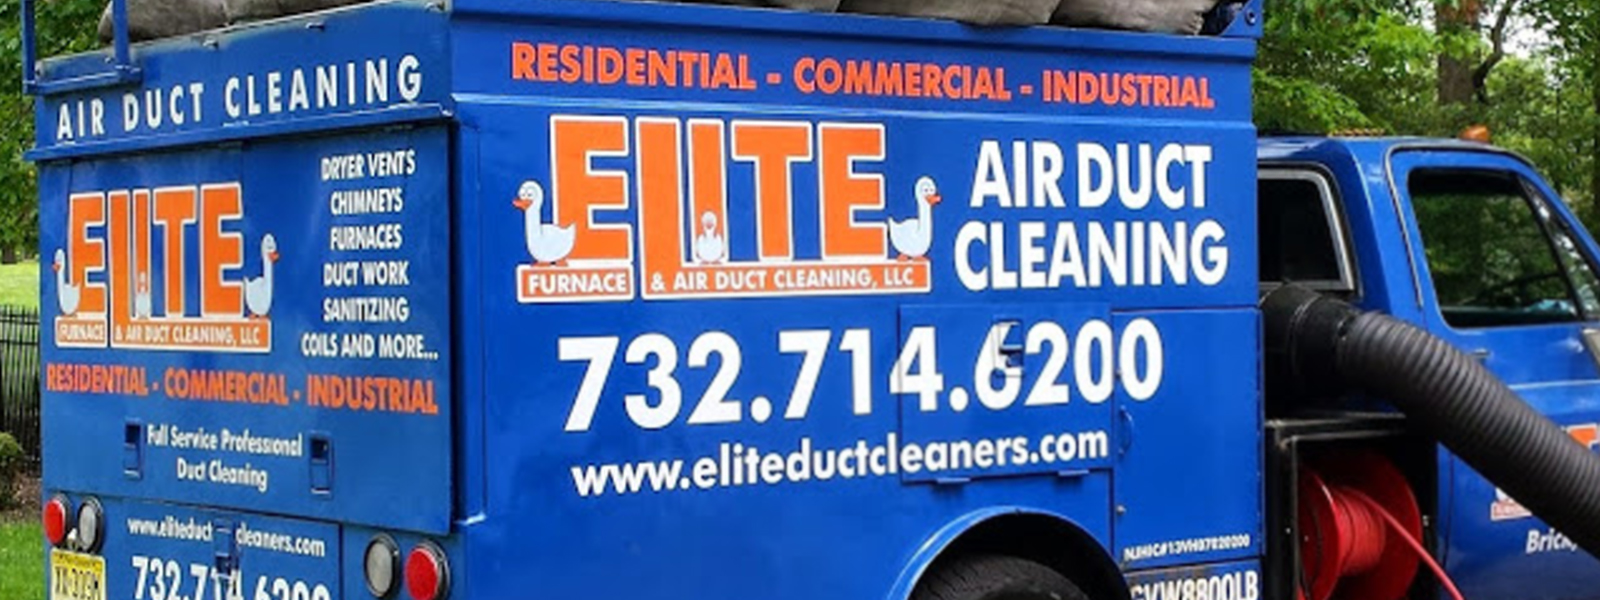 Air Duct Cleaning Nj Air Duct Cleaning Brick Township Nj